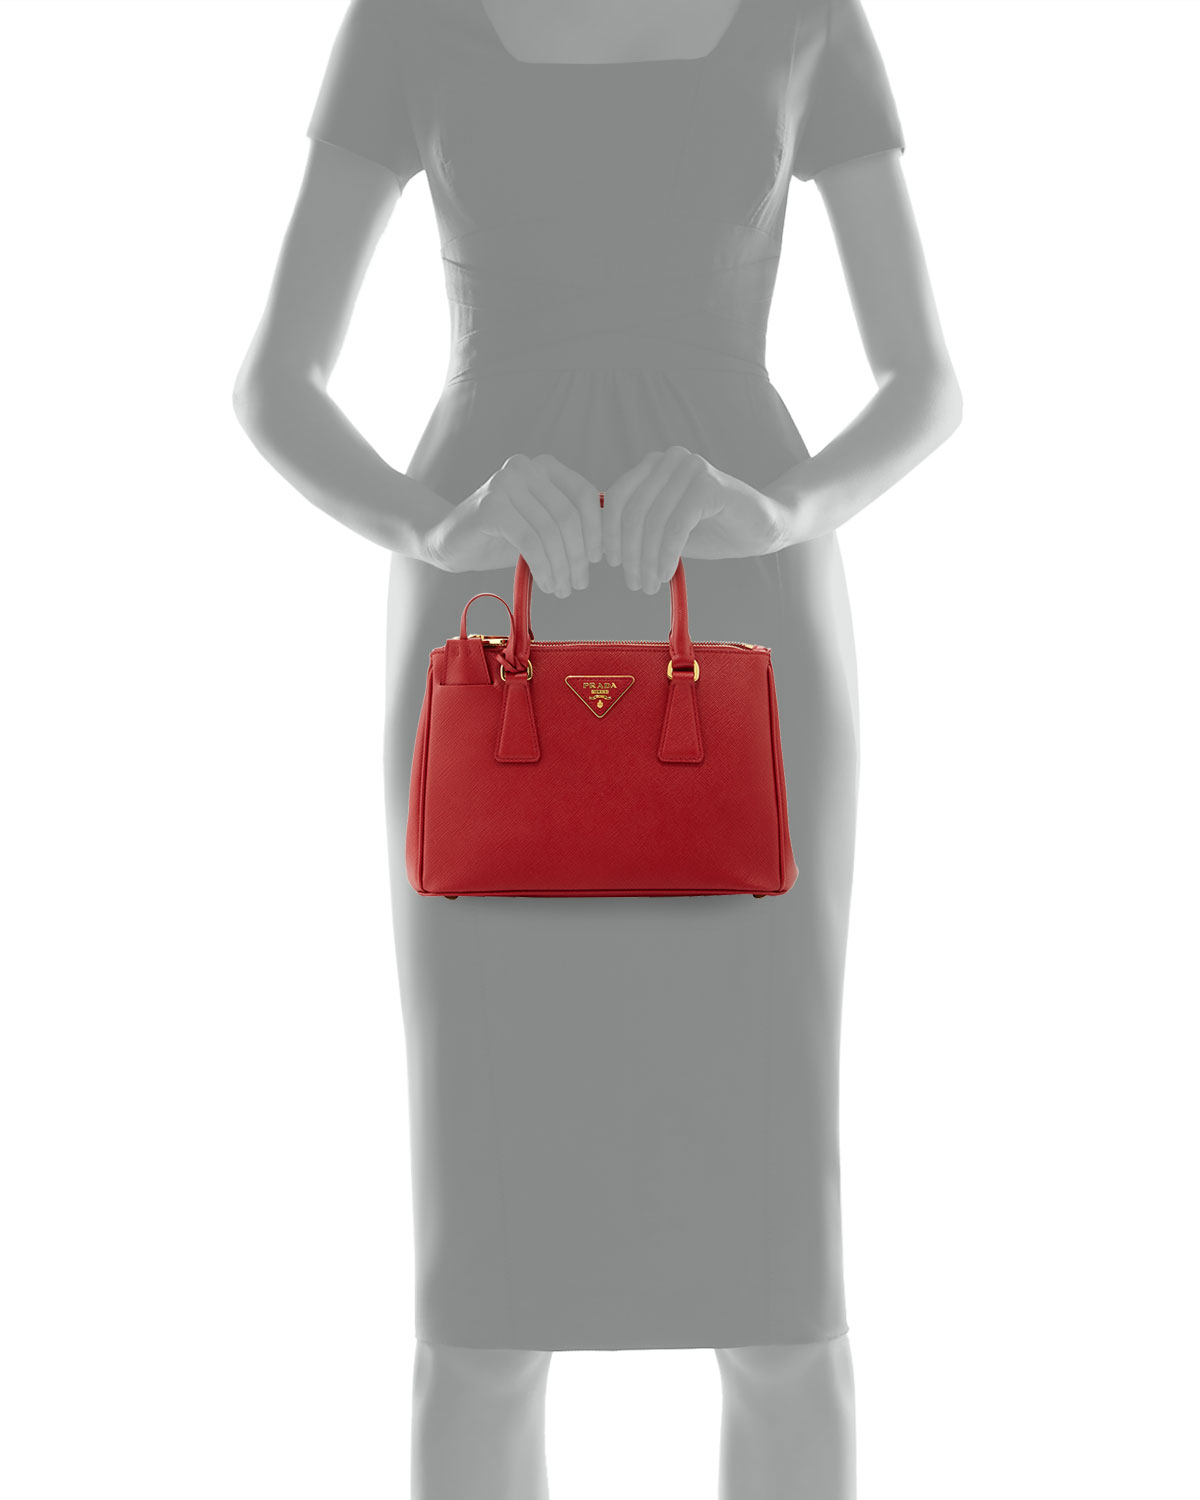 prada wallets for women - Prada Saffiano Baby Executive Tote Bag With Strap in Red | Lyst